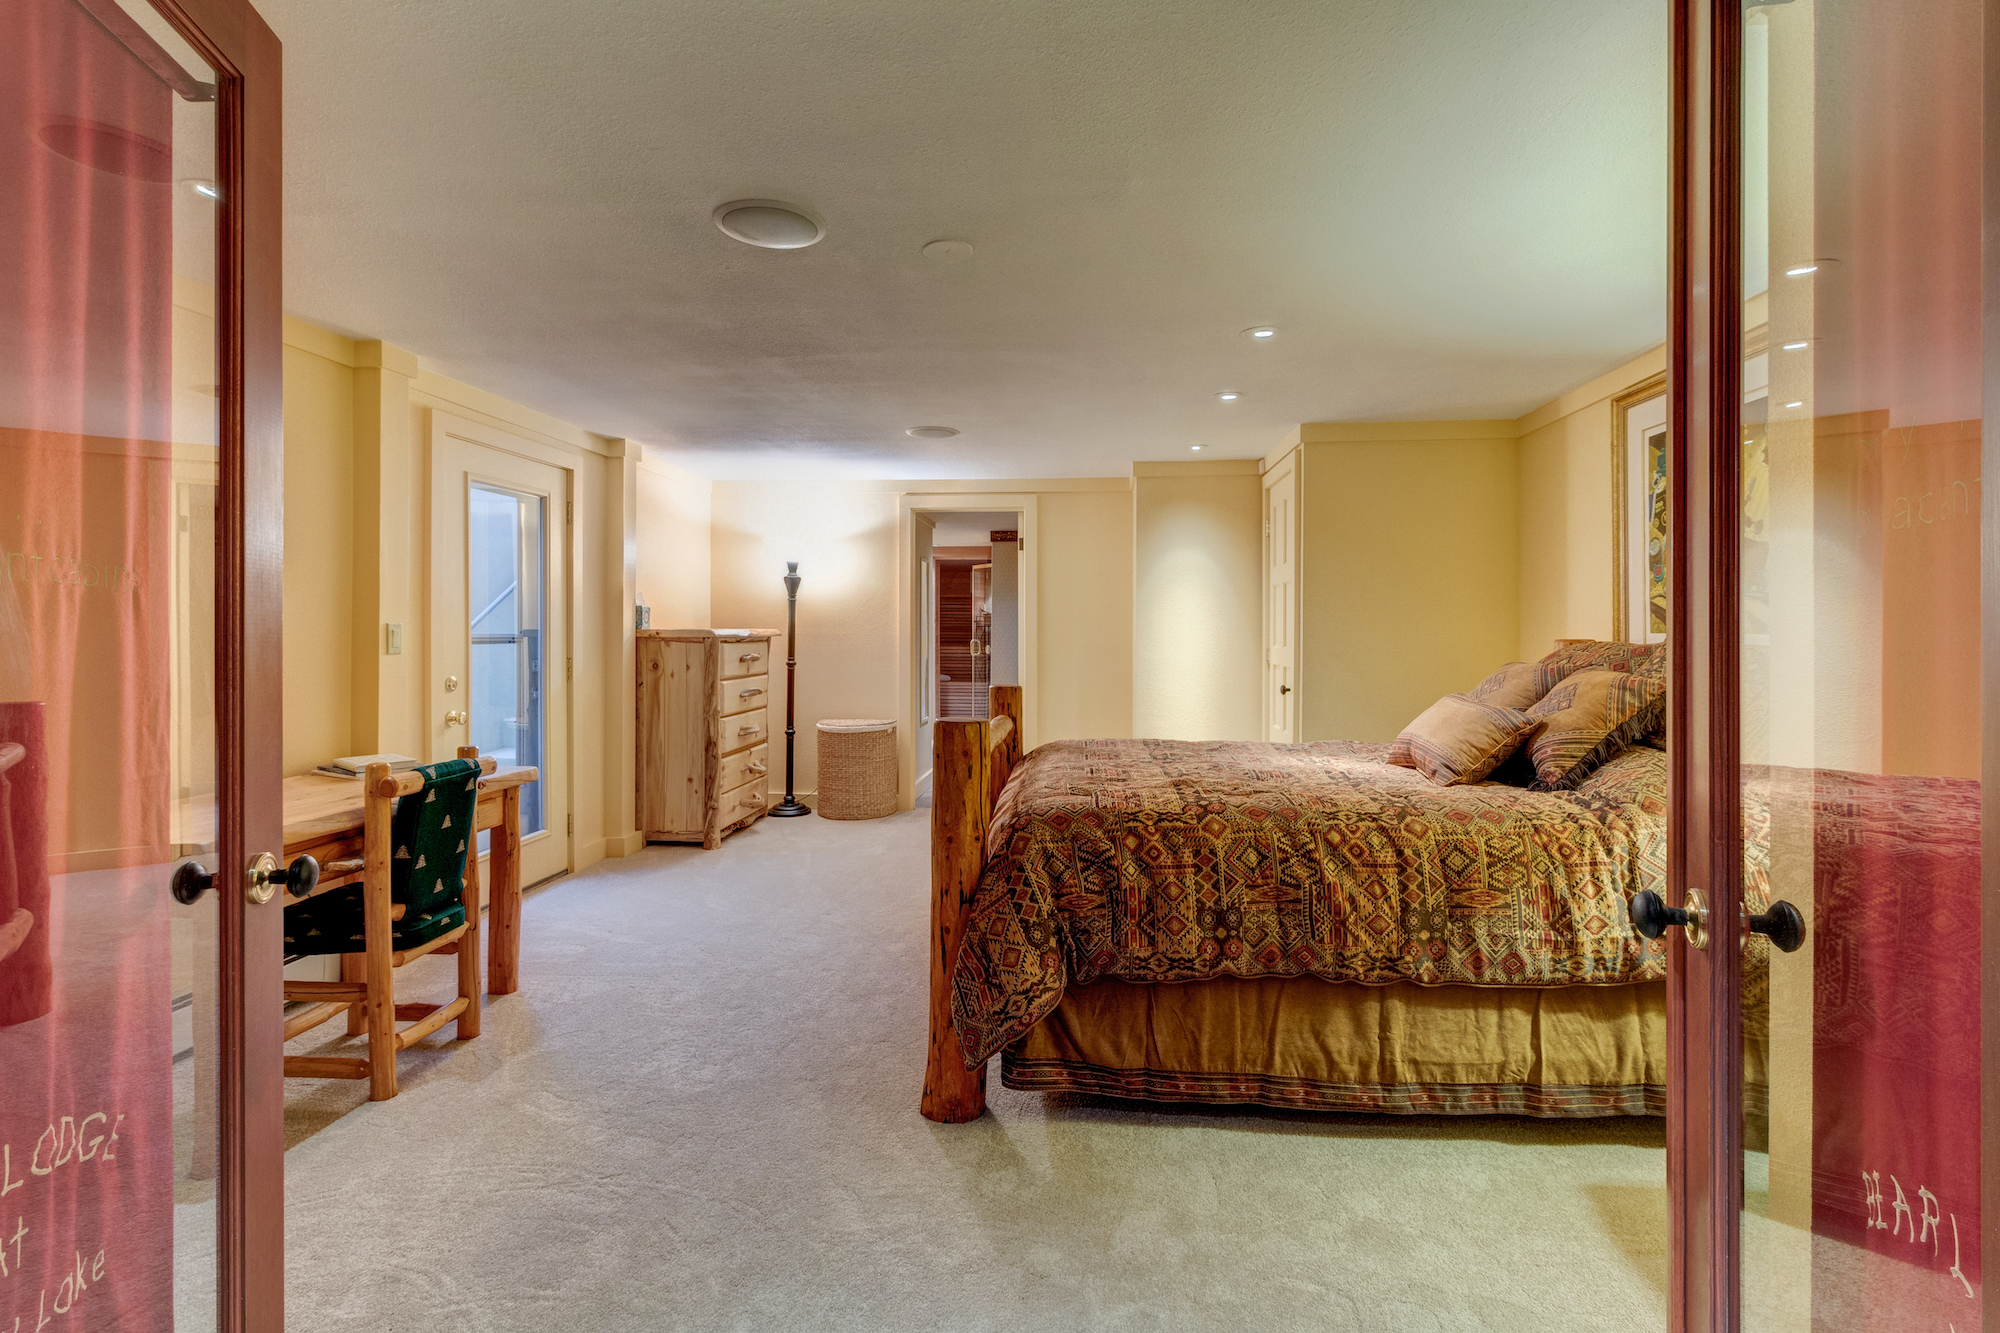 22-Lower level guest suite w separate outside entrance and adjoining bathroom.jpg